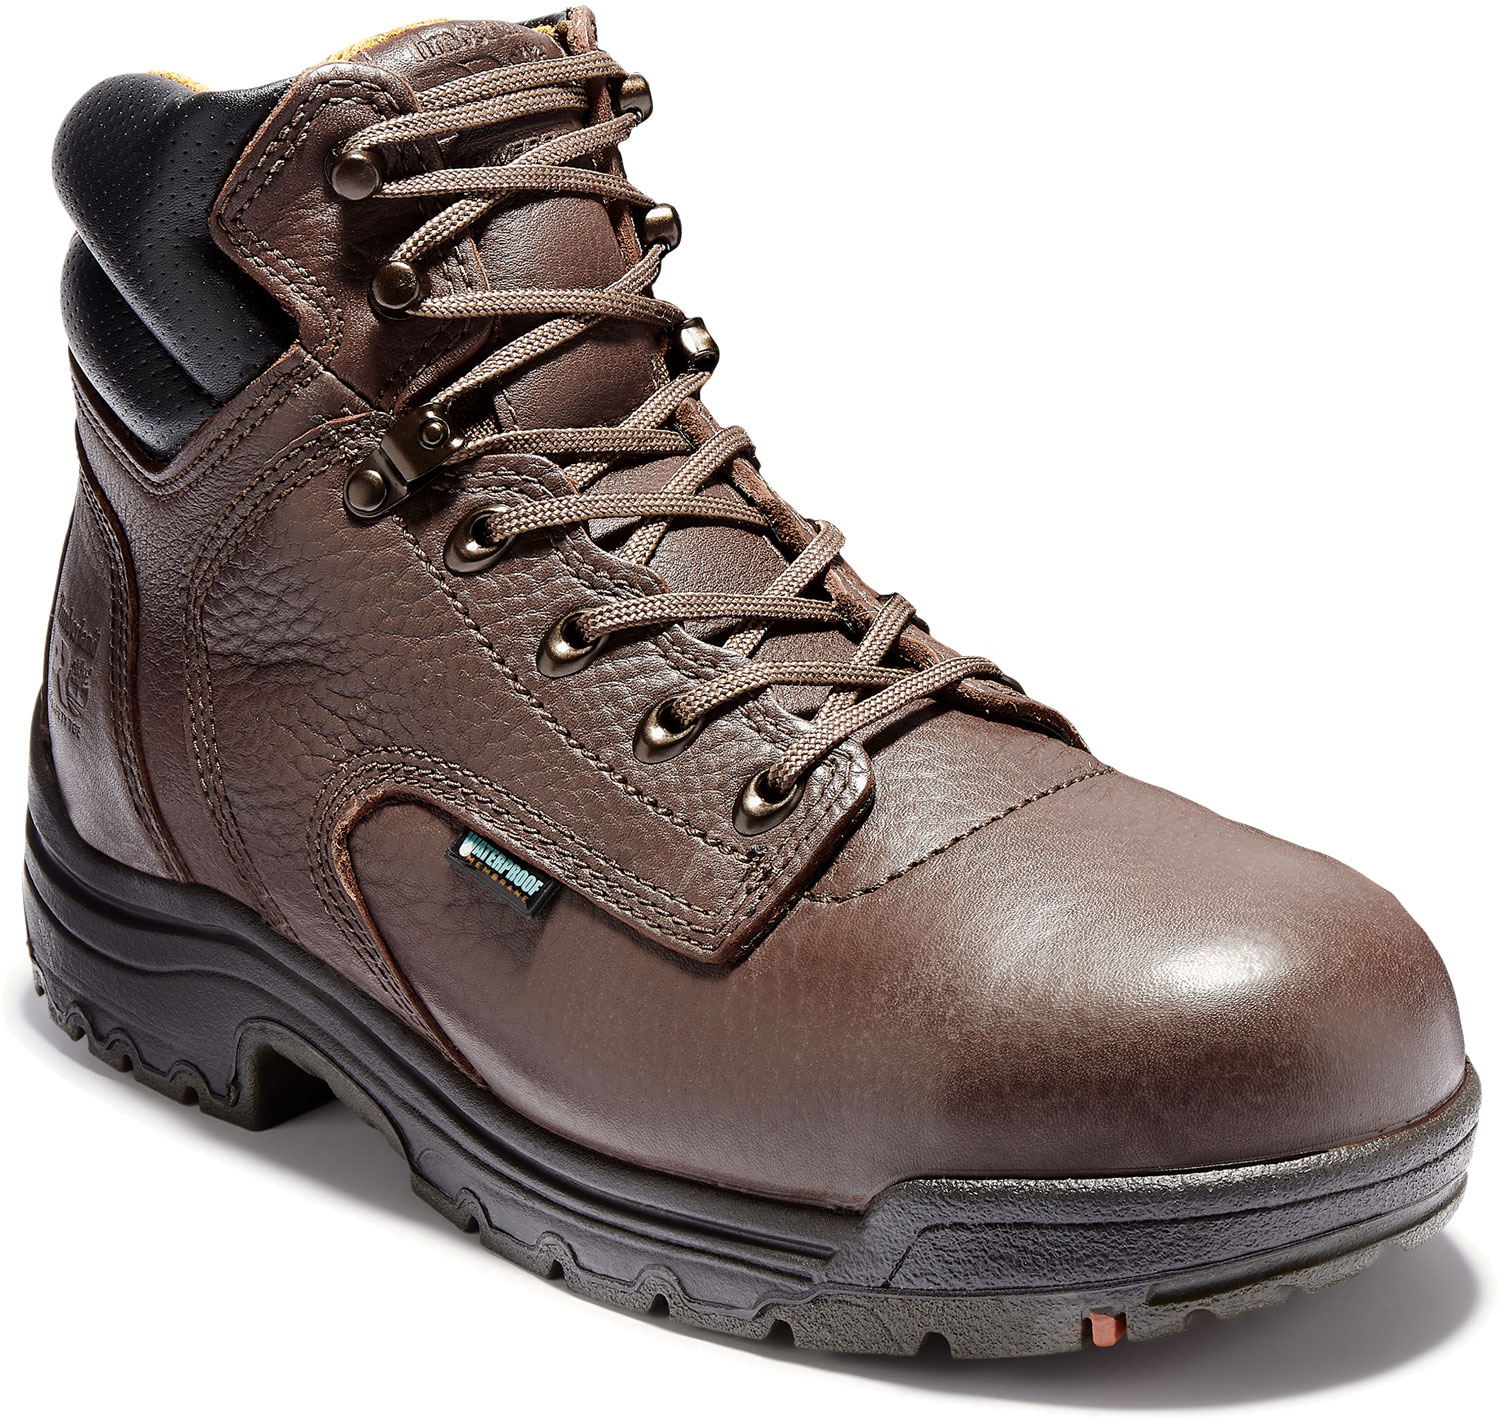 Safgard :: Work Boots, Safety Shoes